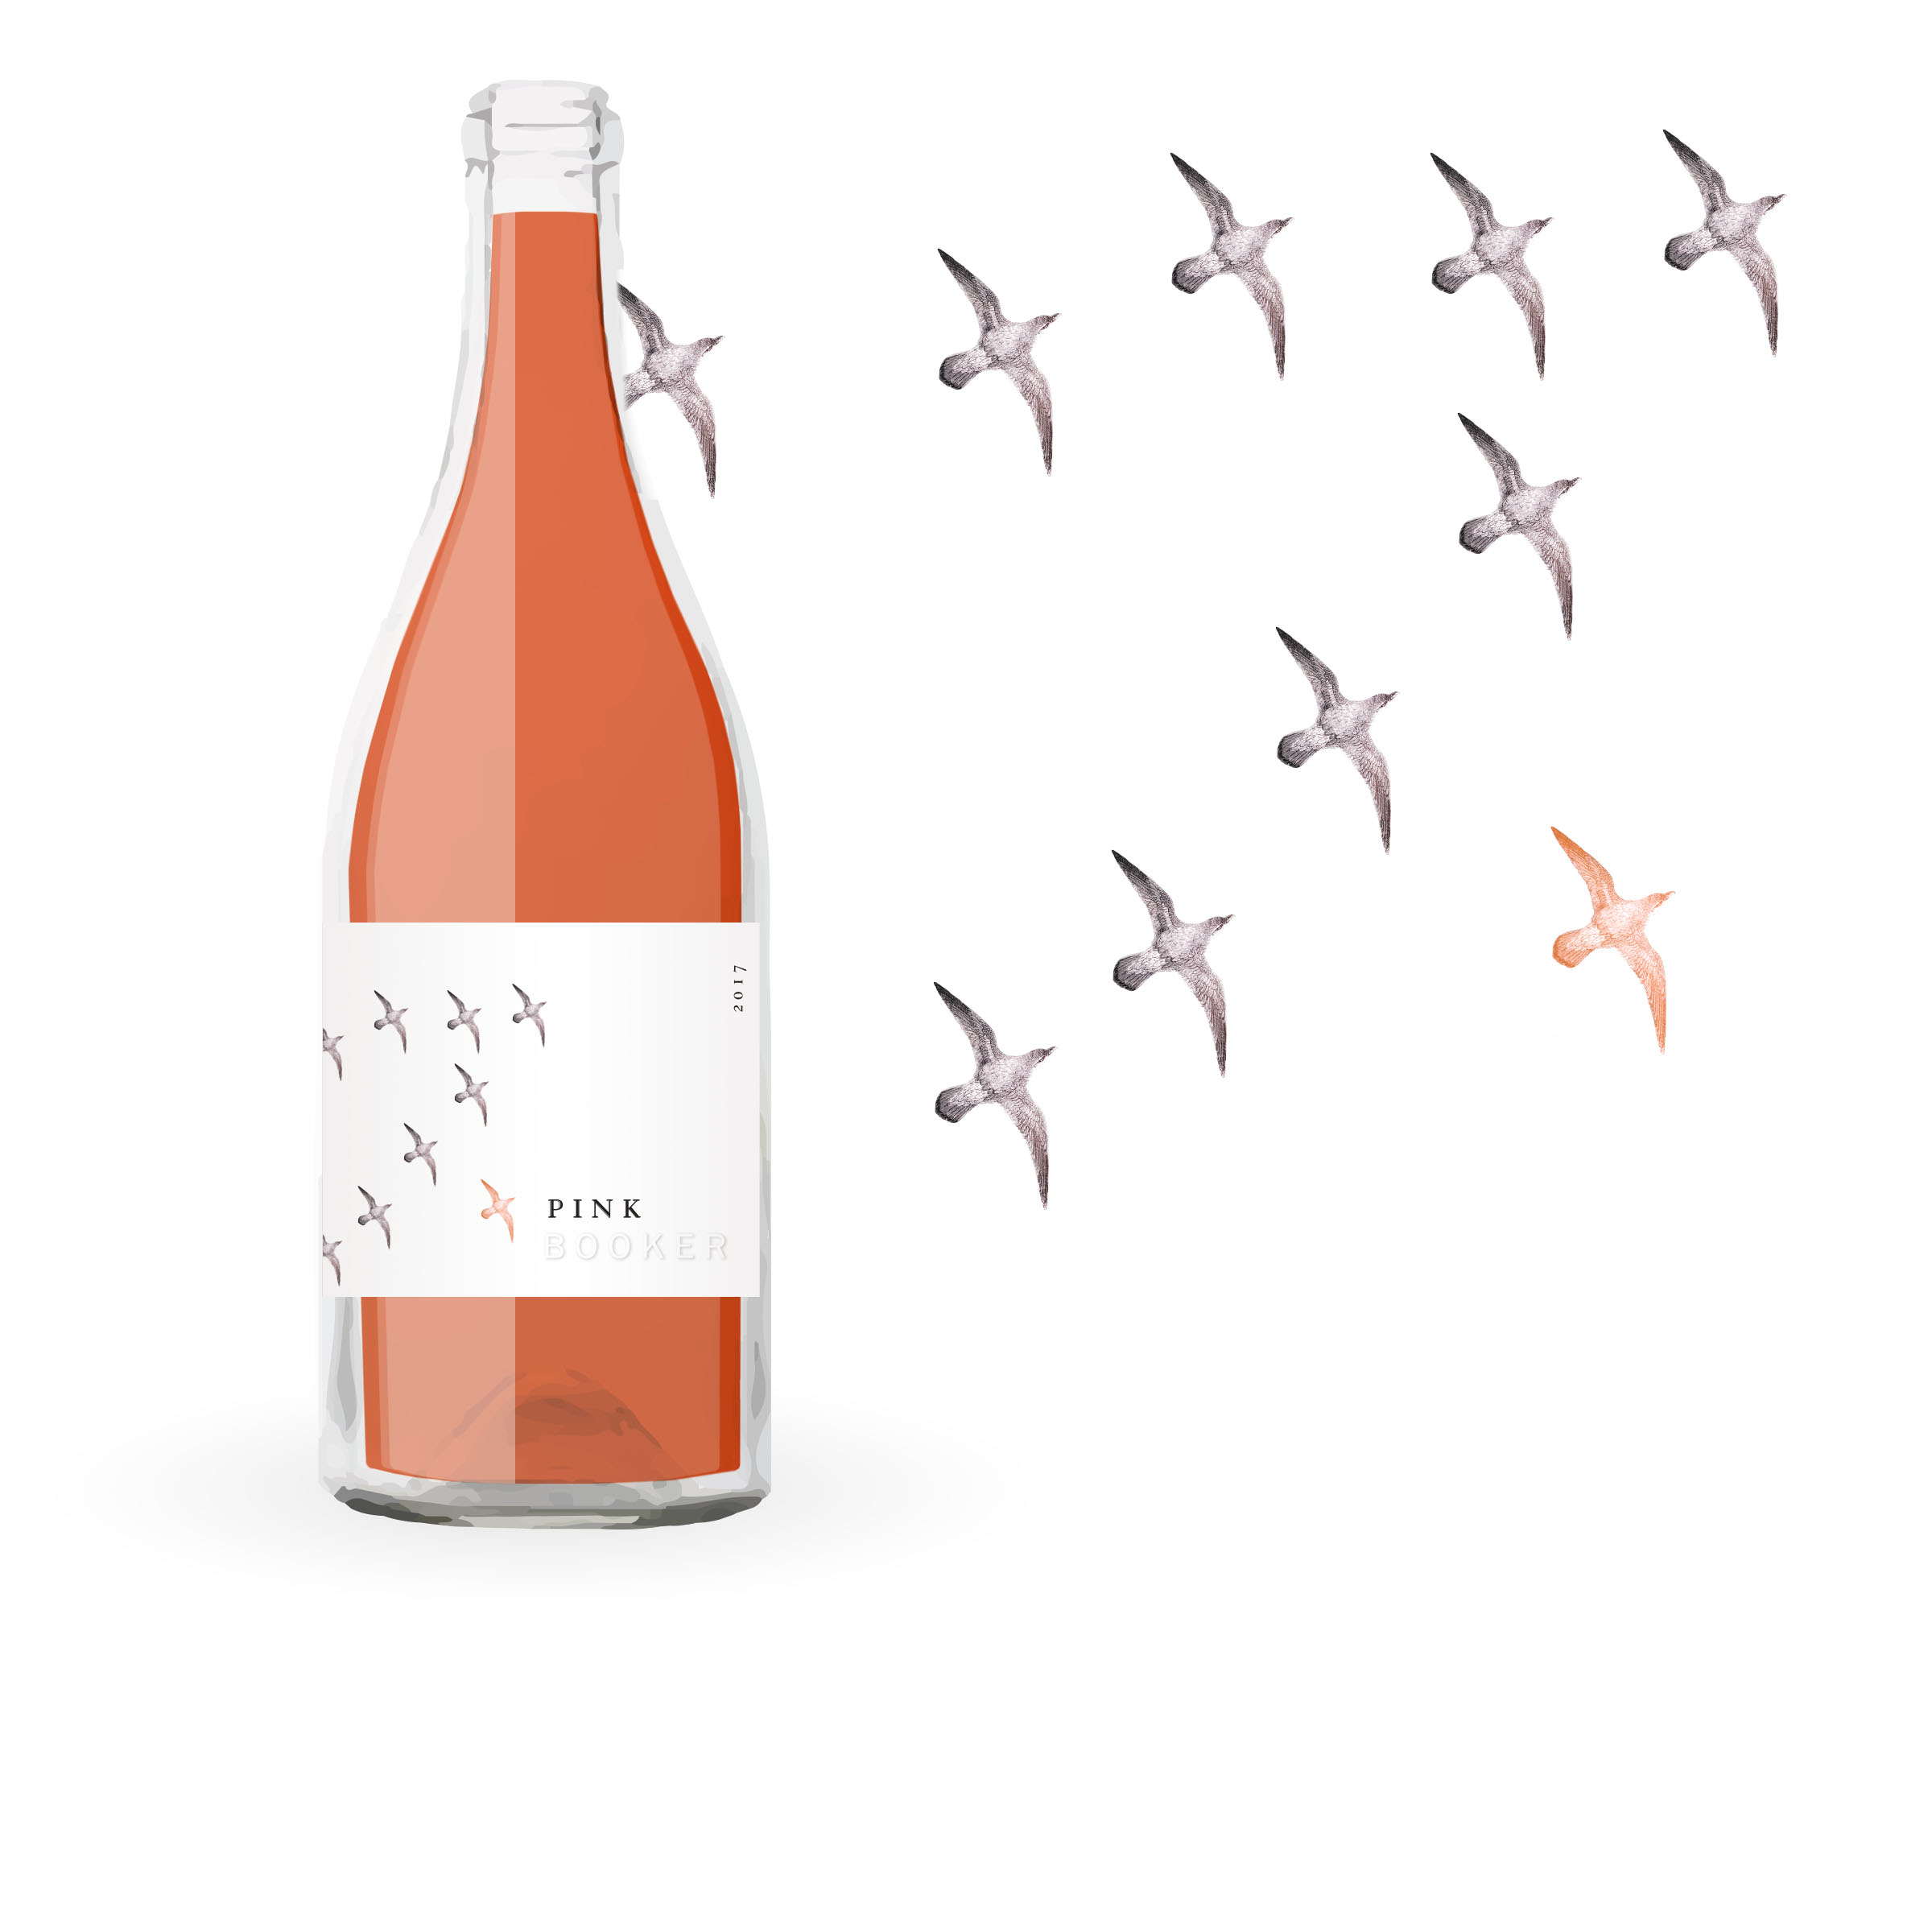 /  CONCEPT 3  / Outlier  Let's be real. Booker is a serious winery.  …But can Pink be the ugly duckling? Dinner guests migrating home for Thanksgiving say yes.